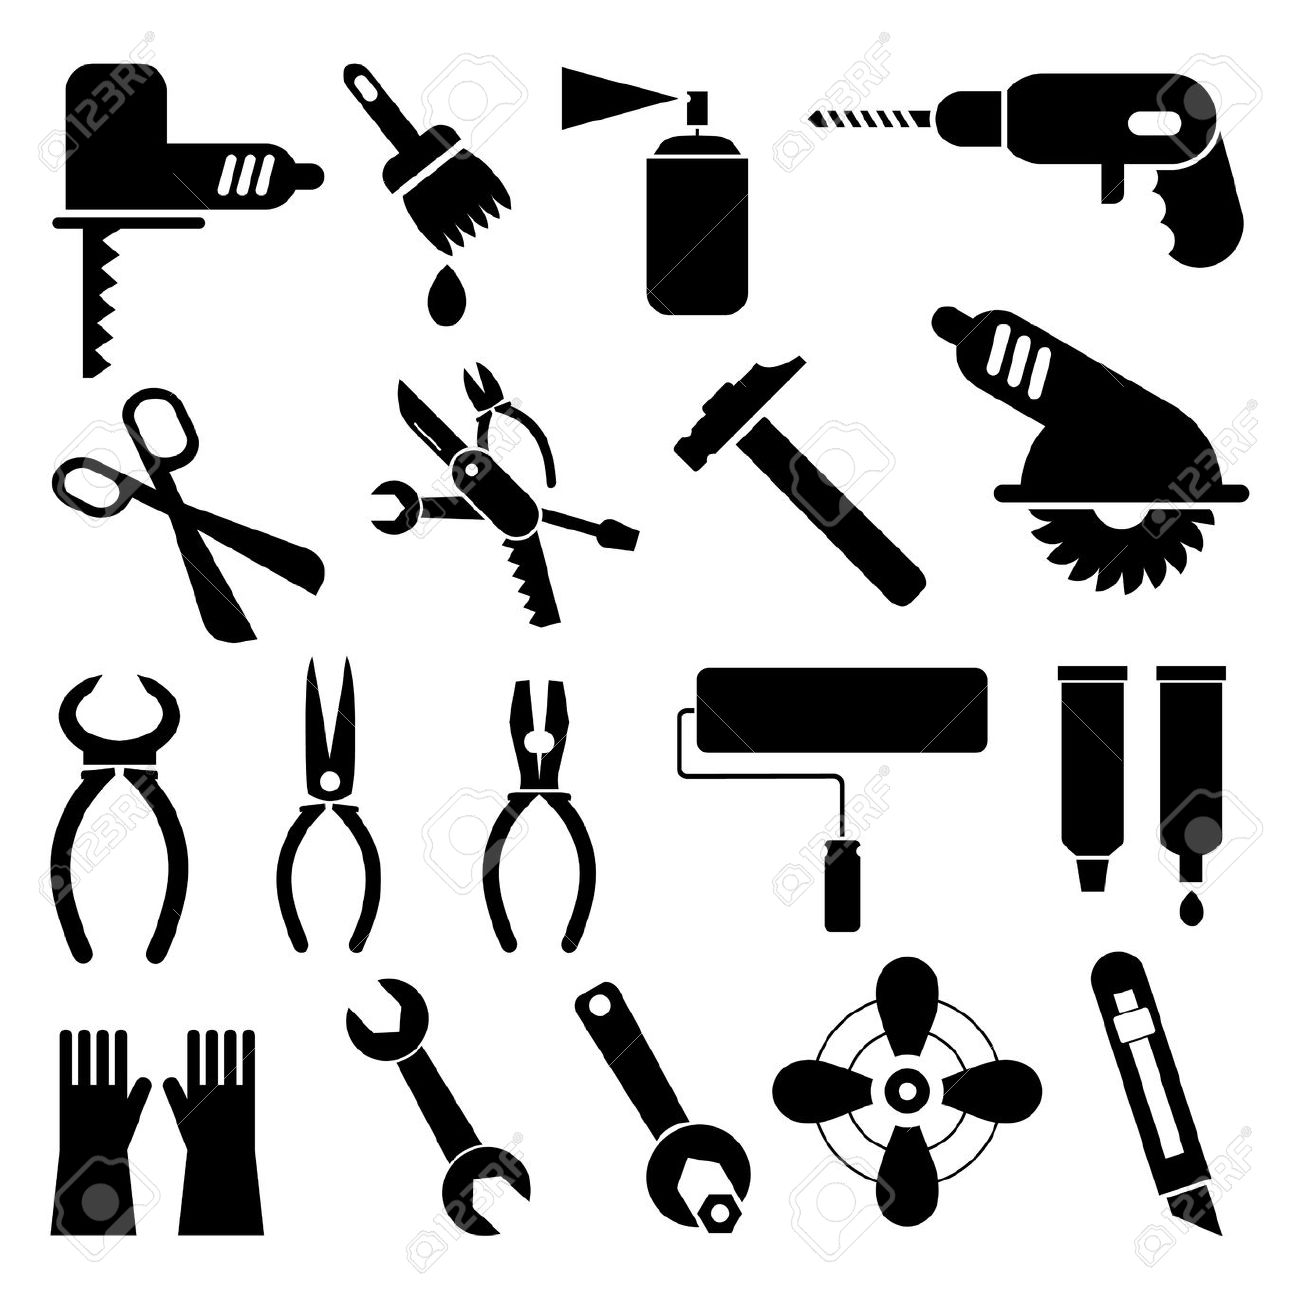 Free clipart work tools.